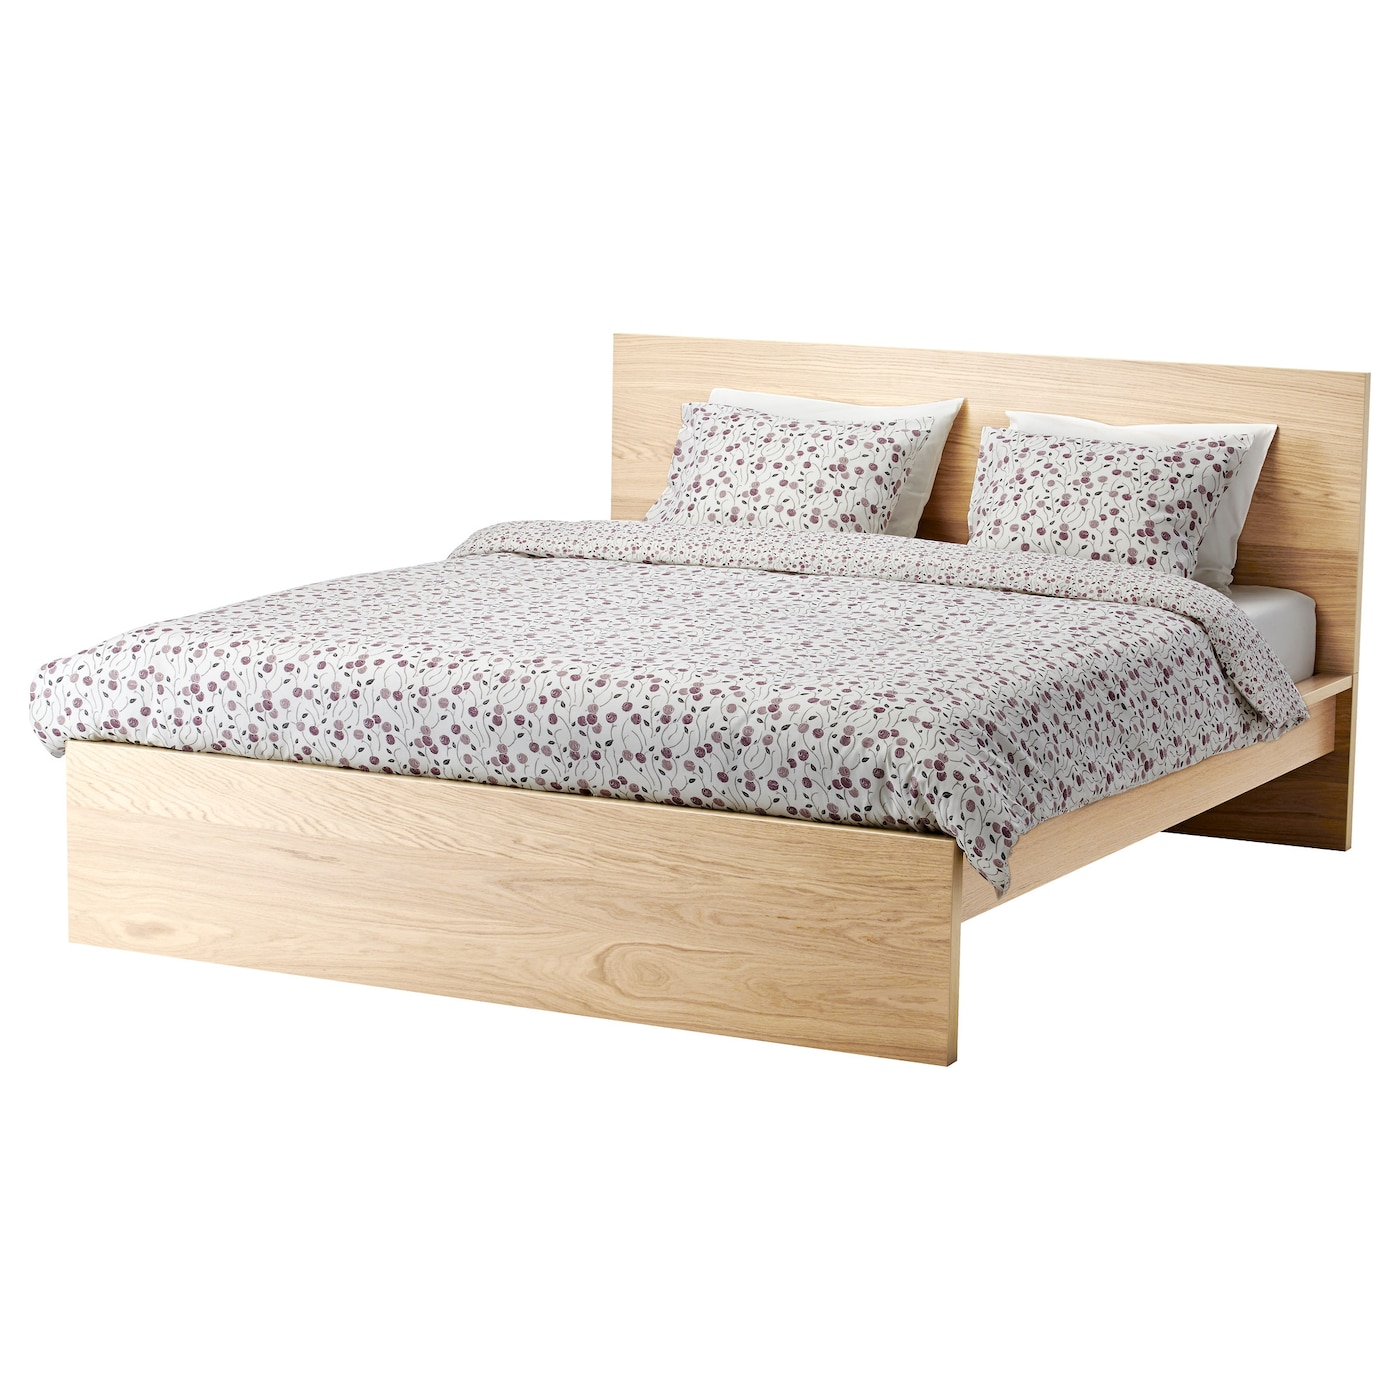 Beds & Bed Frames  IKEA Ireland